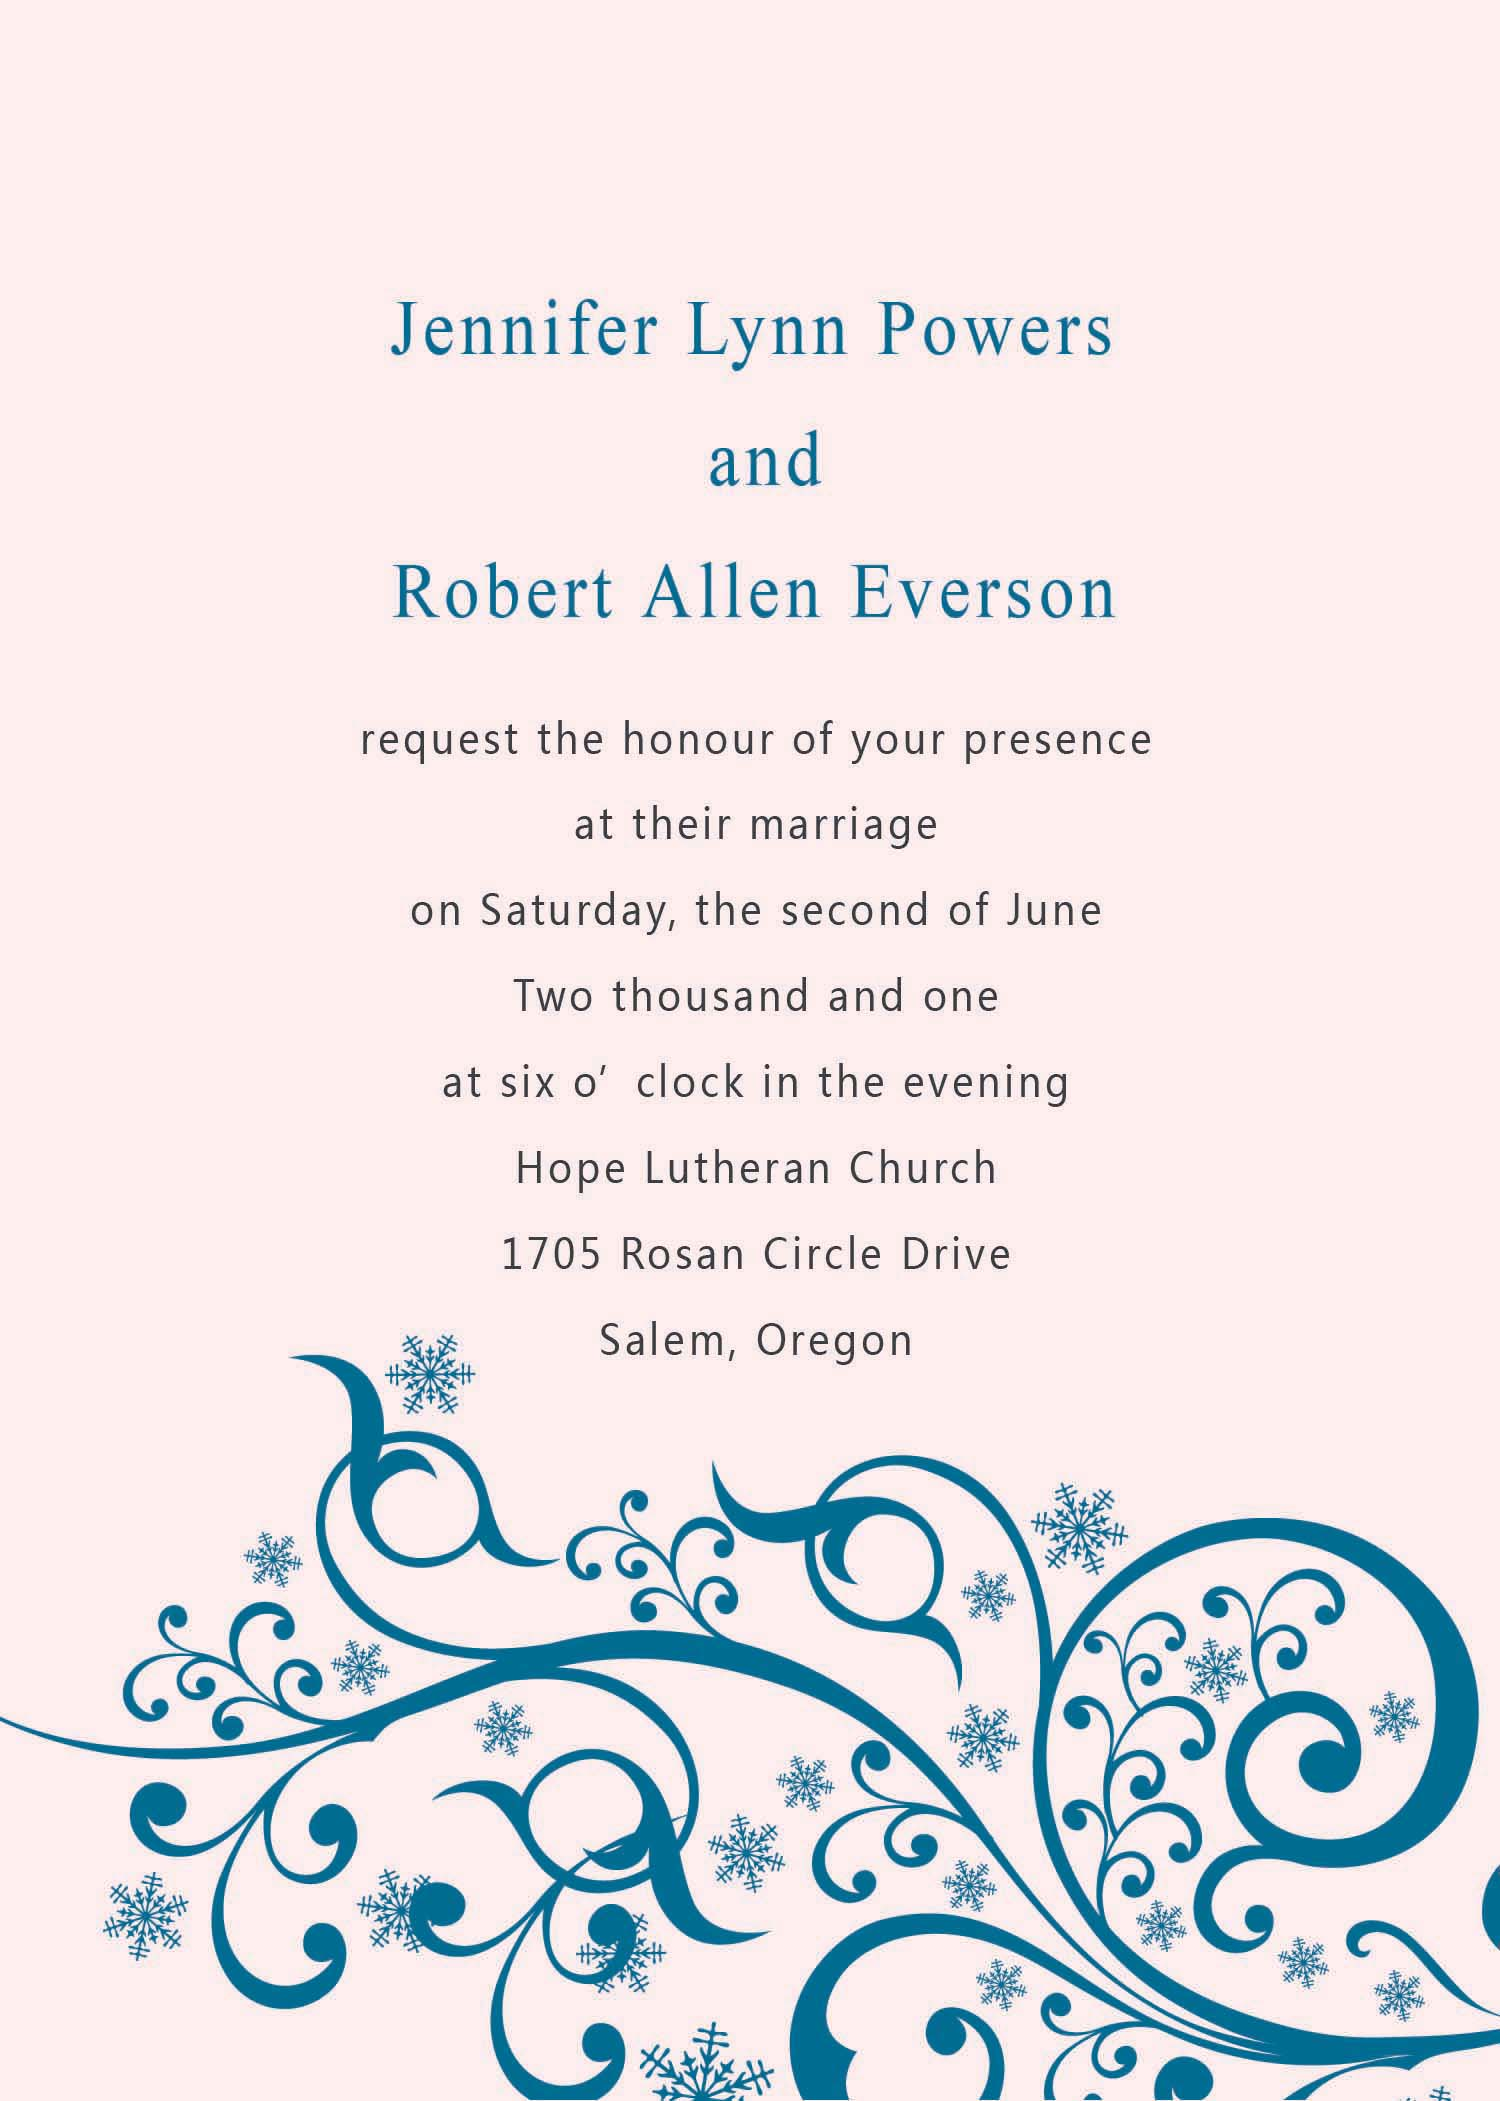 wedding invitations templates for word wedding invitation invitation templates weddingbee photo gallery